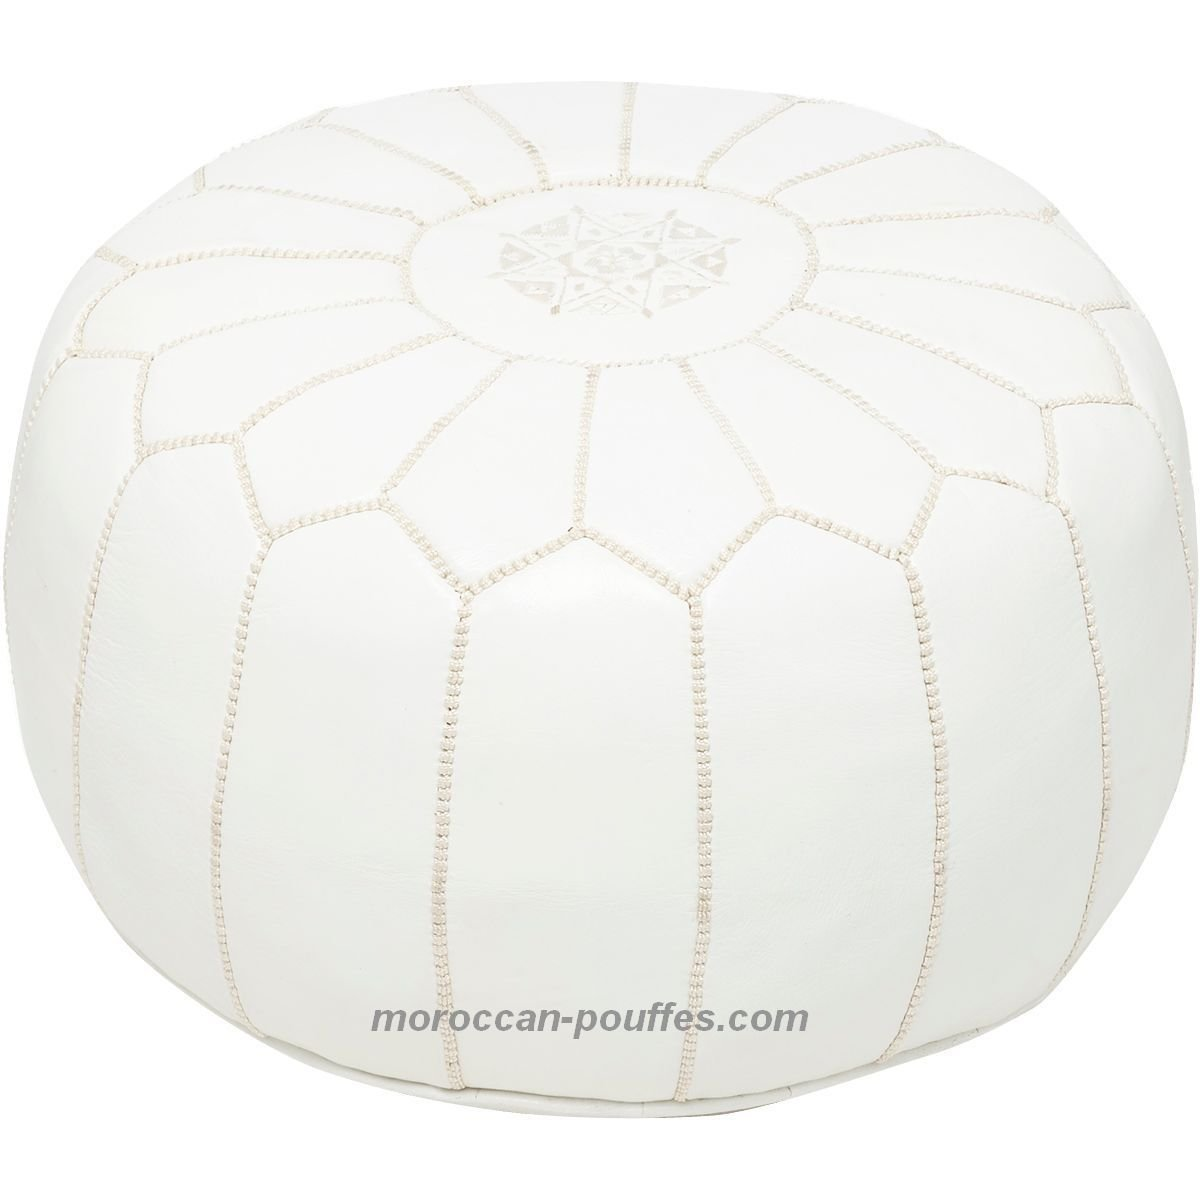 moroccan poufs leather luxury ottomans footstools white unstuffed by moroccan poufs